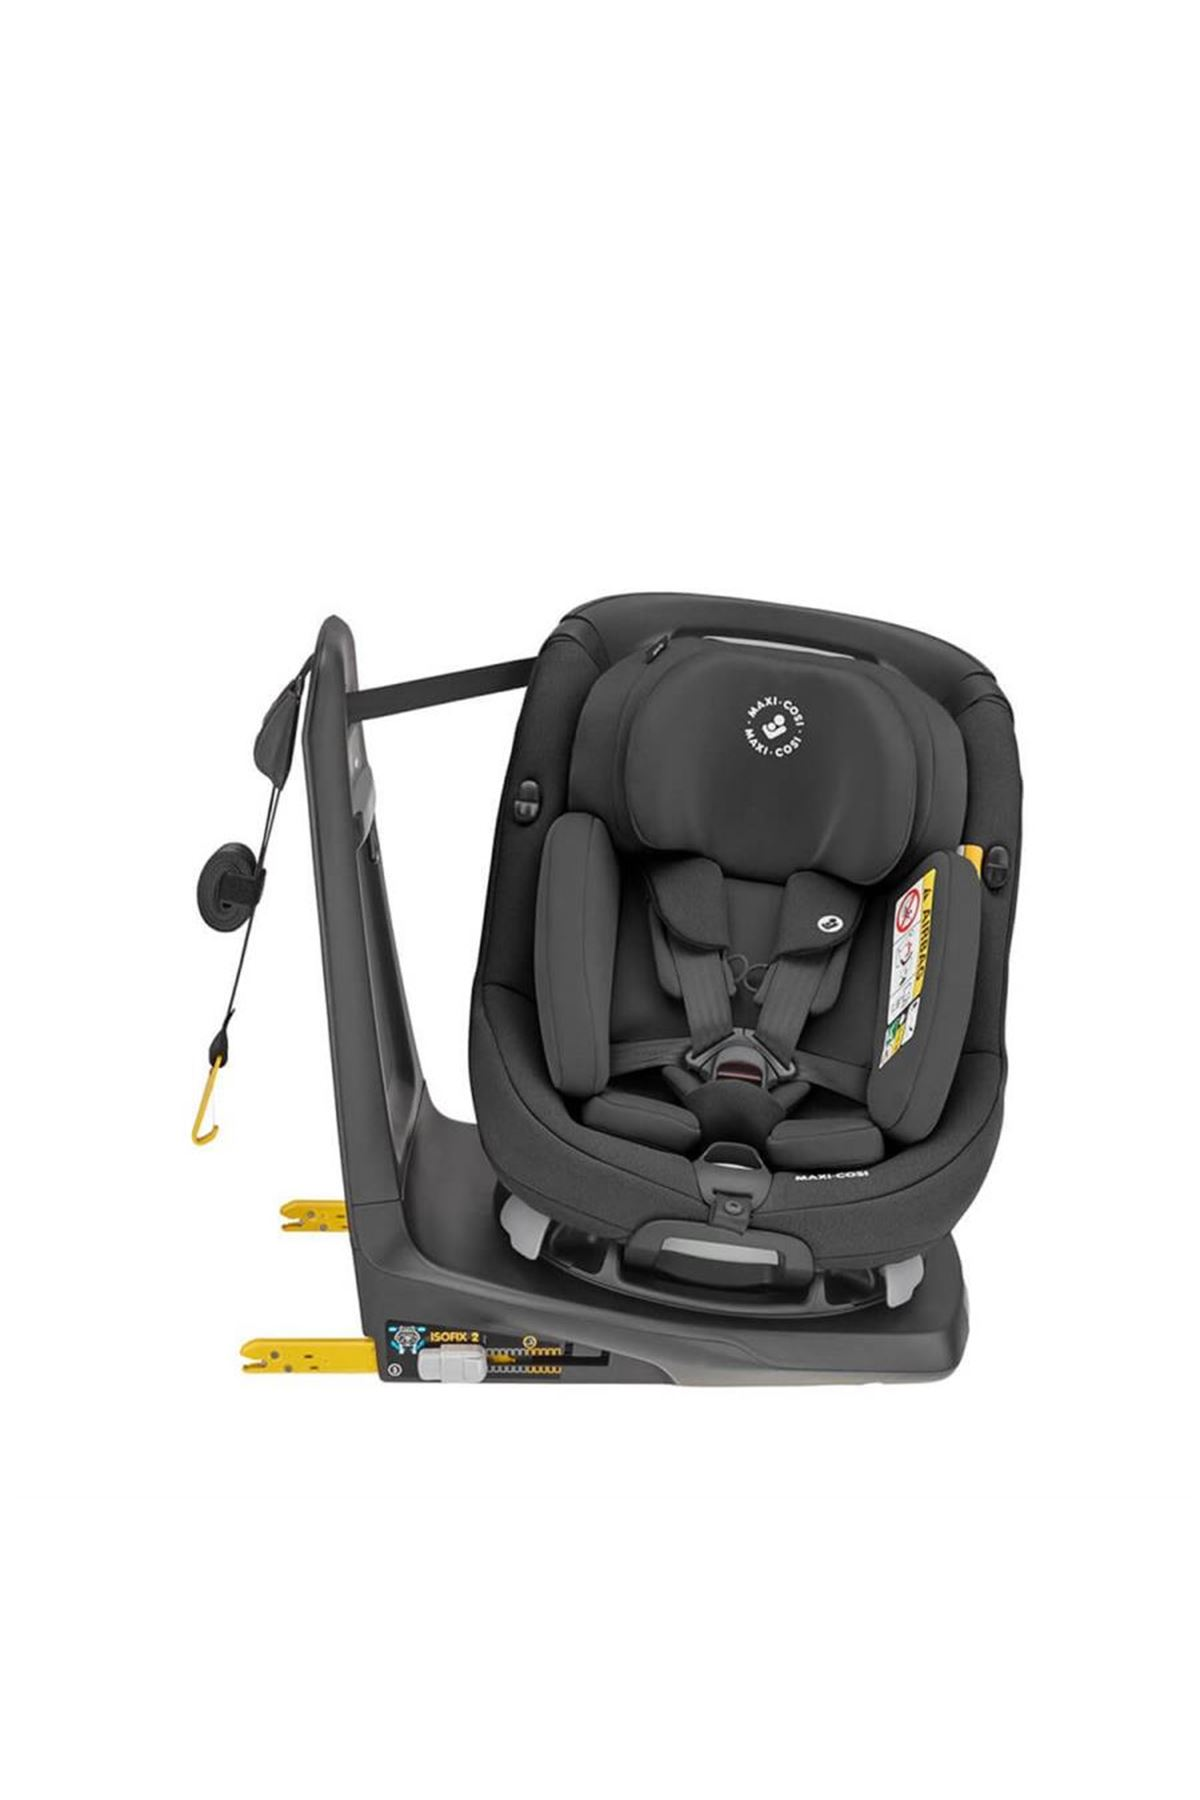 Maxi-Cosi AxissFix Plus Oto Koltuğu / Authentic Black